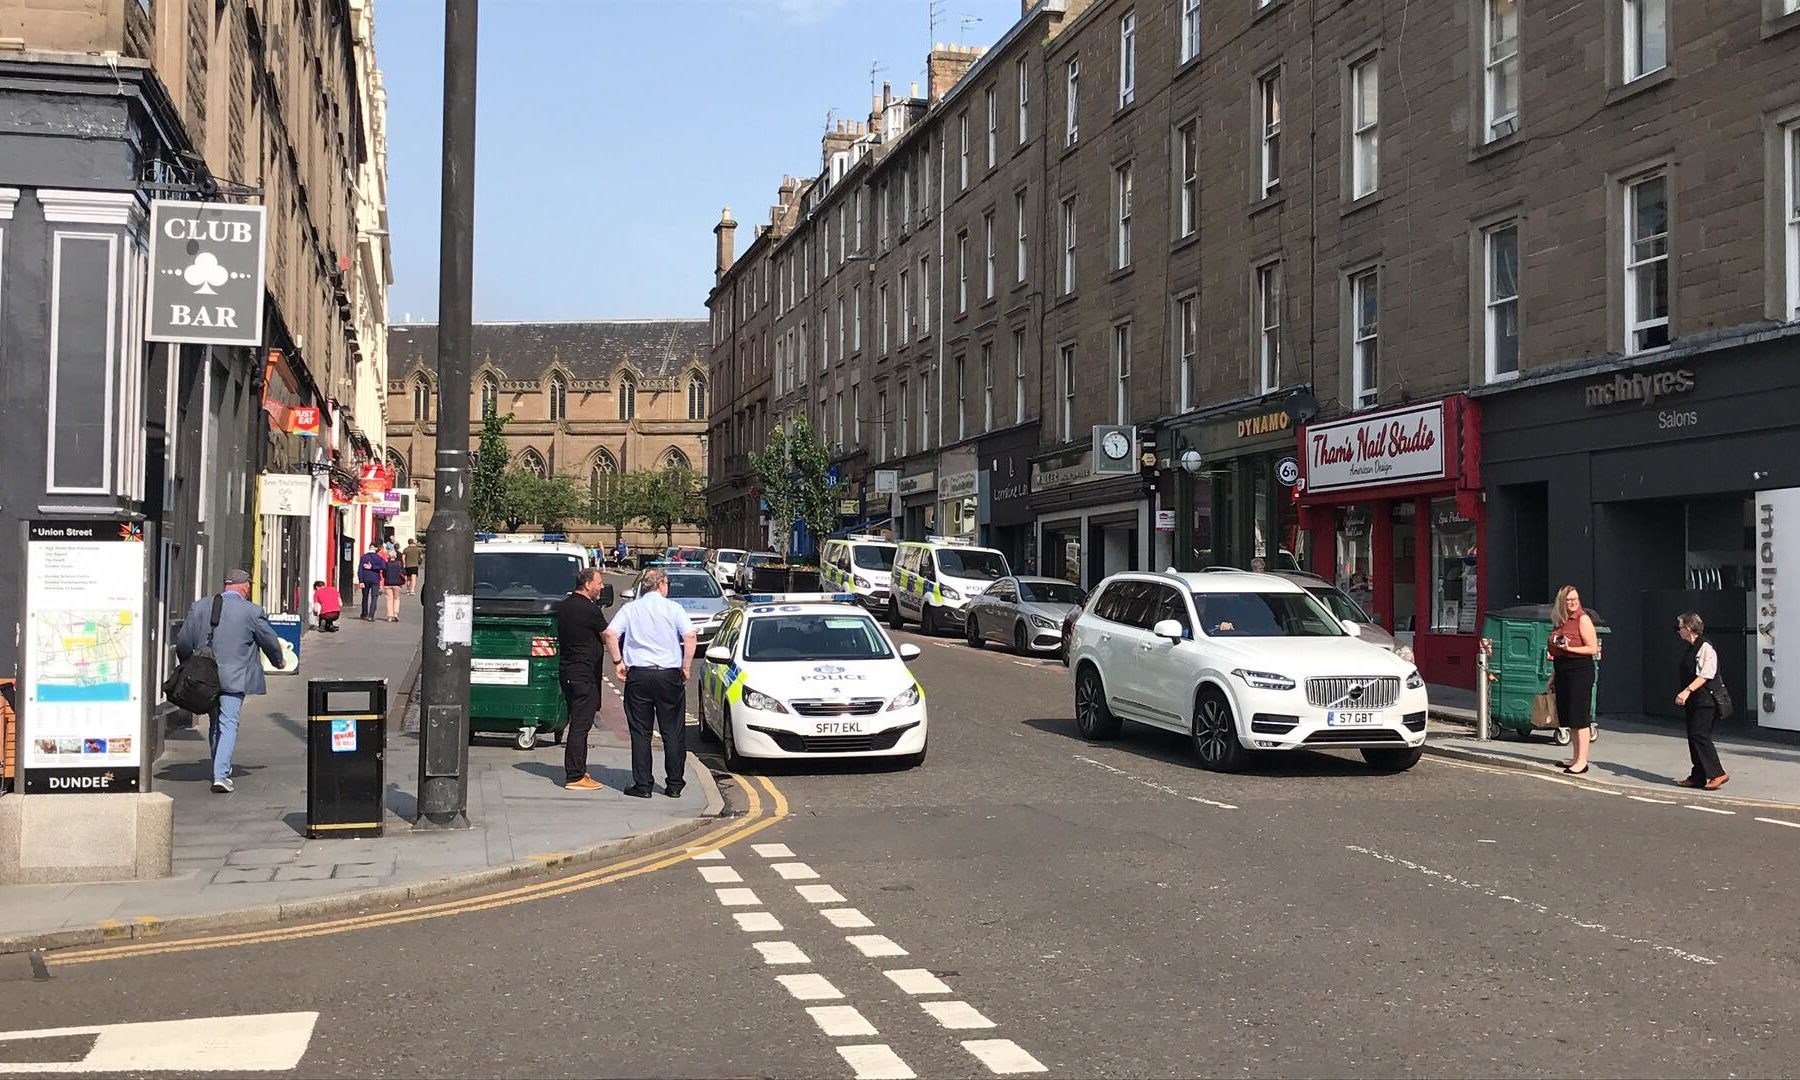 The police presence in Union Street, Dundee.